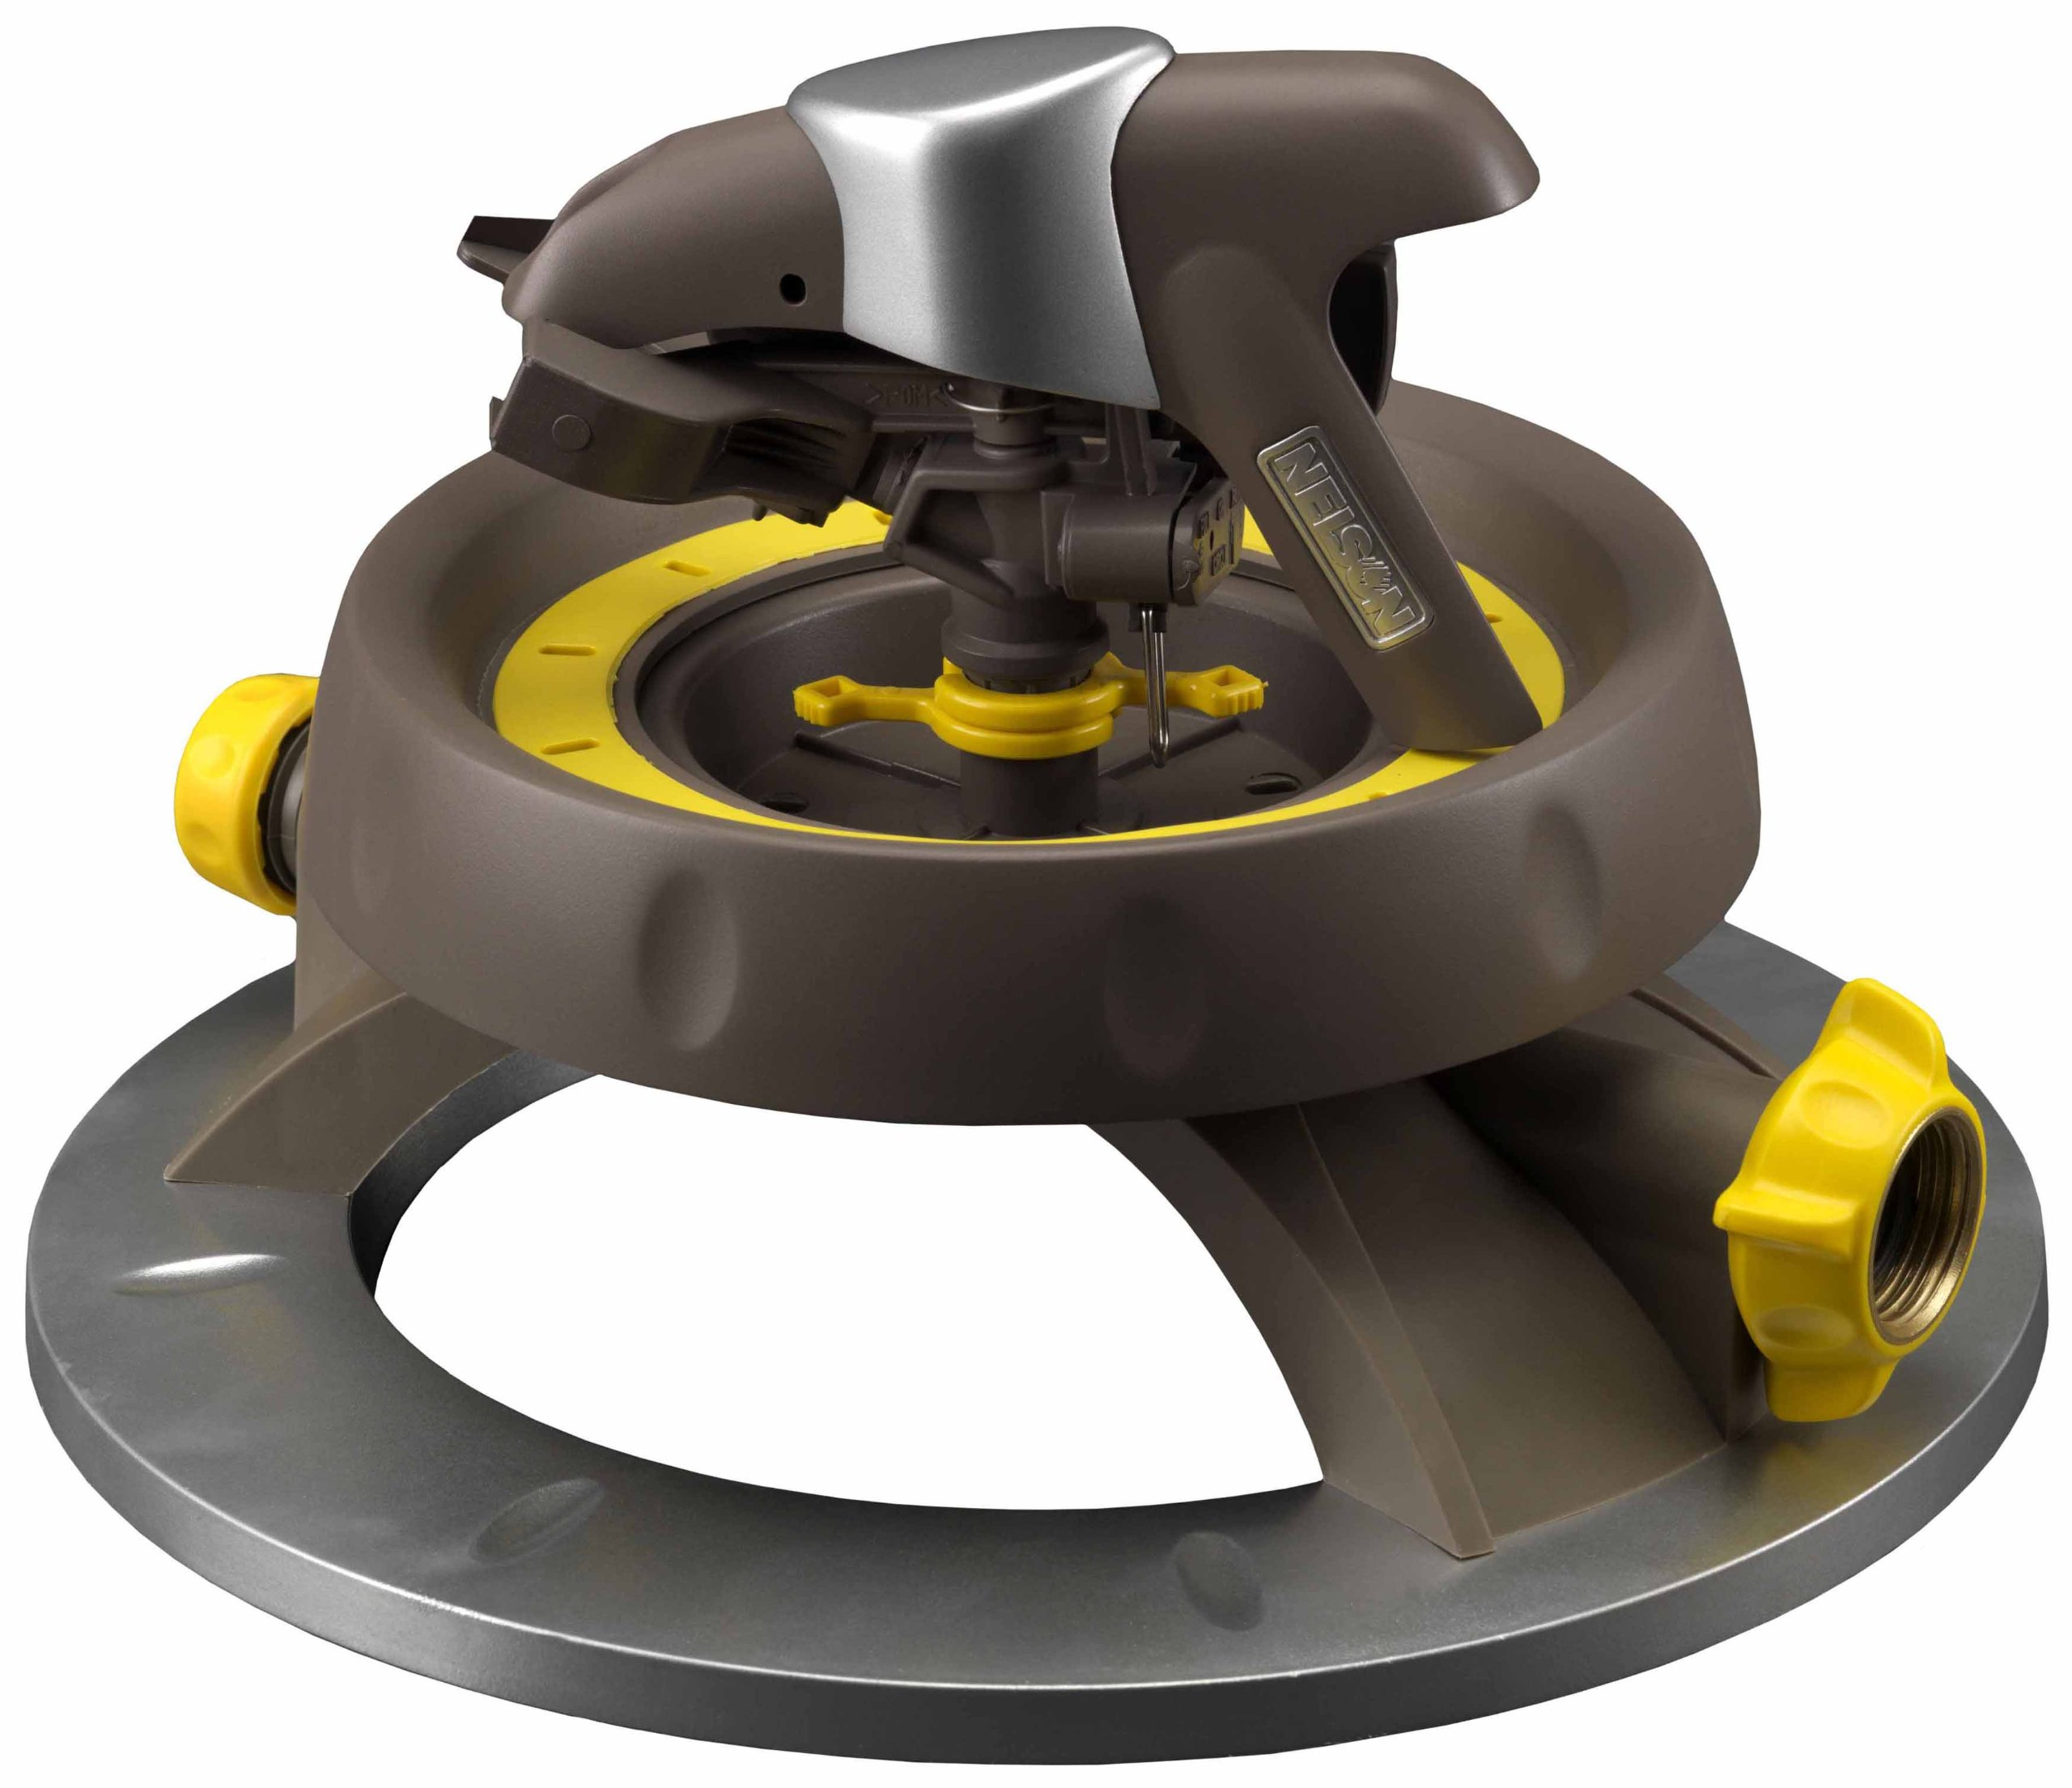 Nelson Contour Master Pulsating Sprinkler 50216 by Nelson